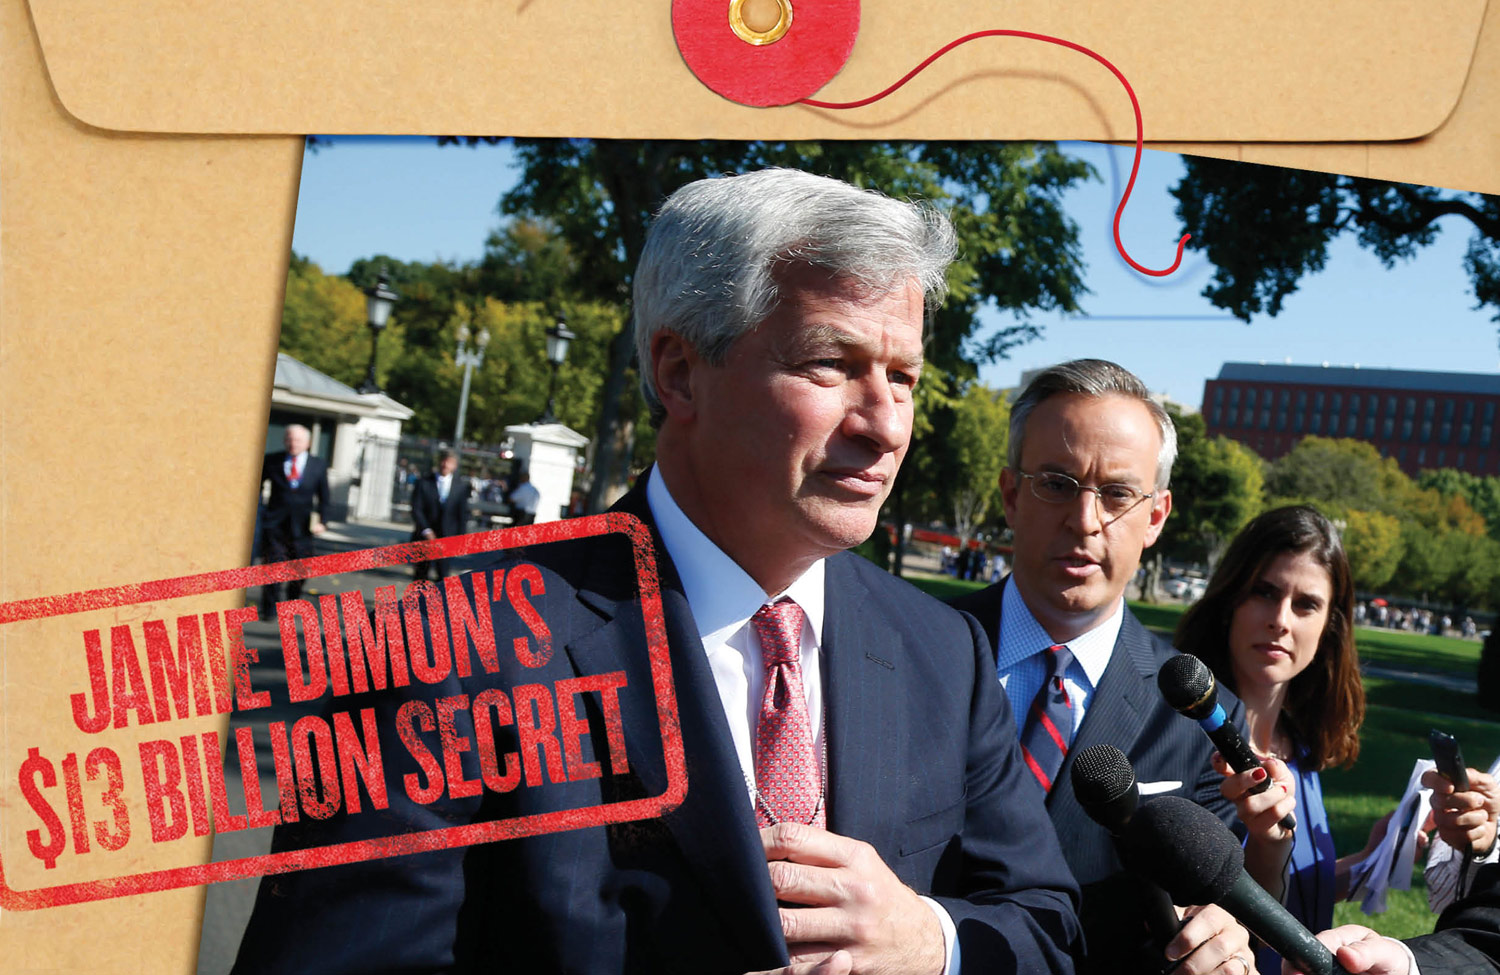 Jamie-Dimon's-13-Billion-Secret